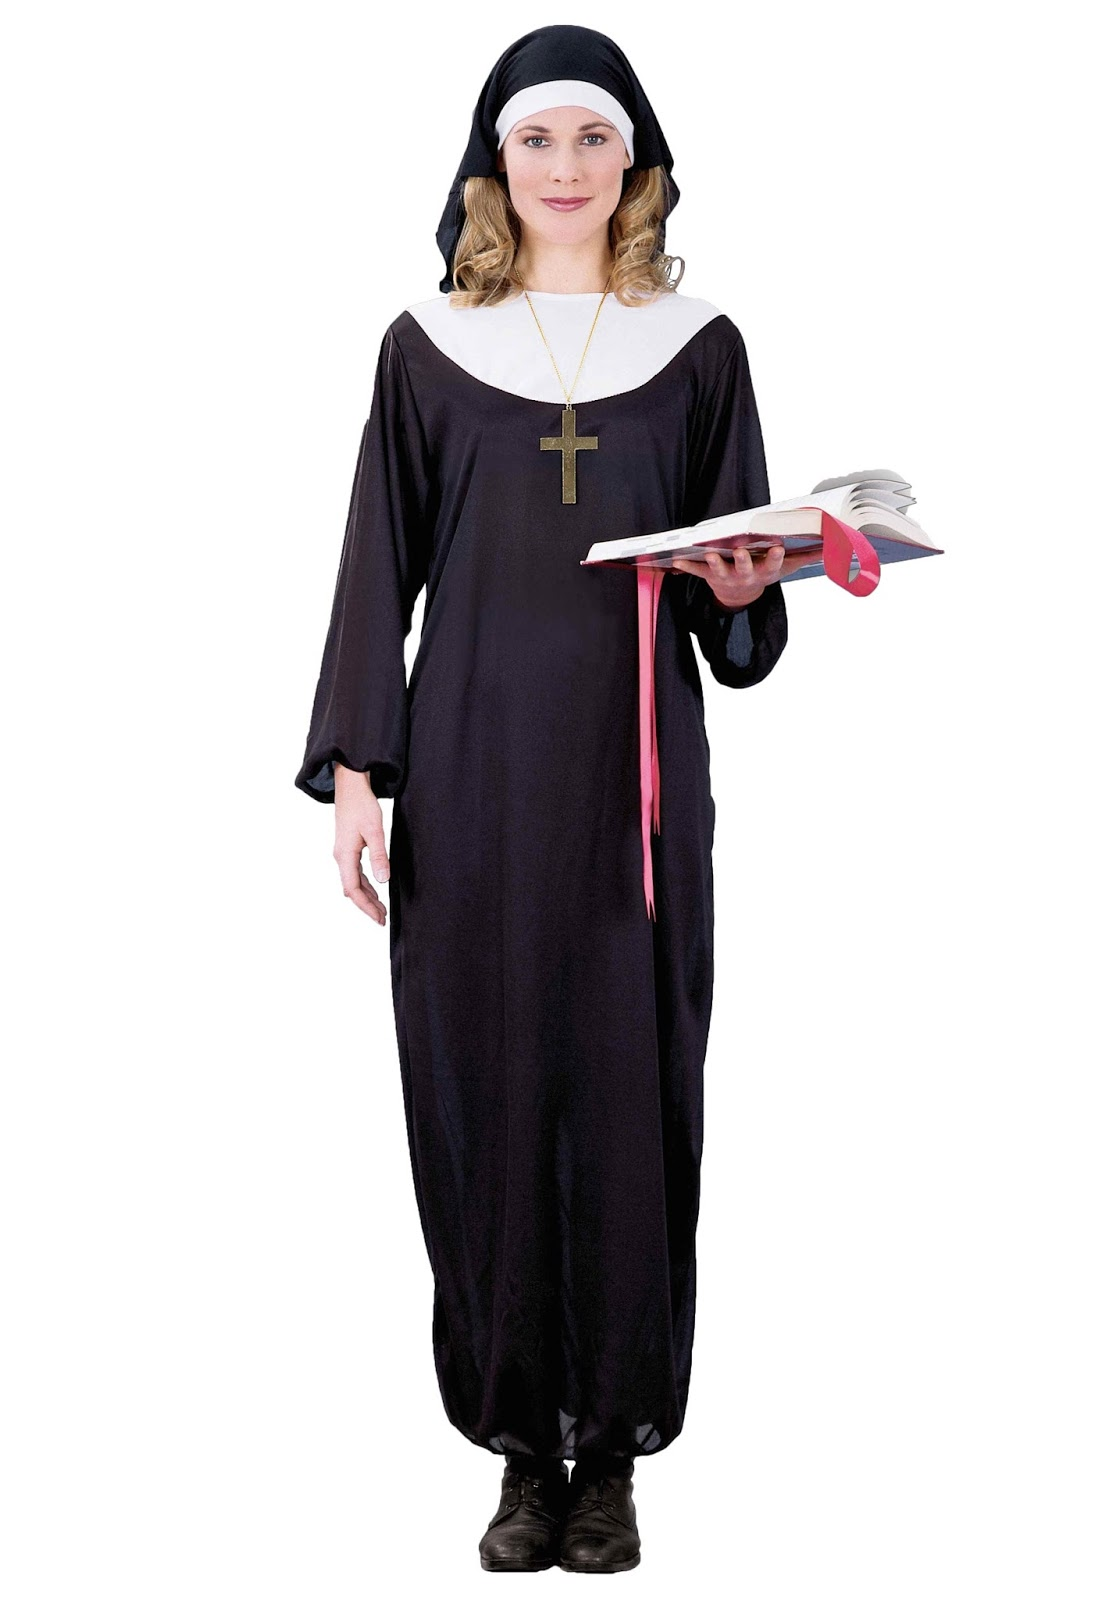 you want to go as a priest for halloween